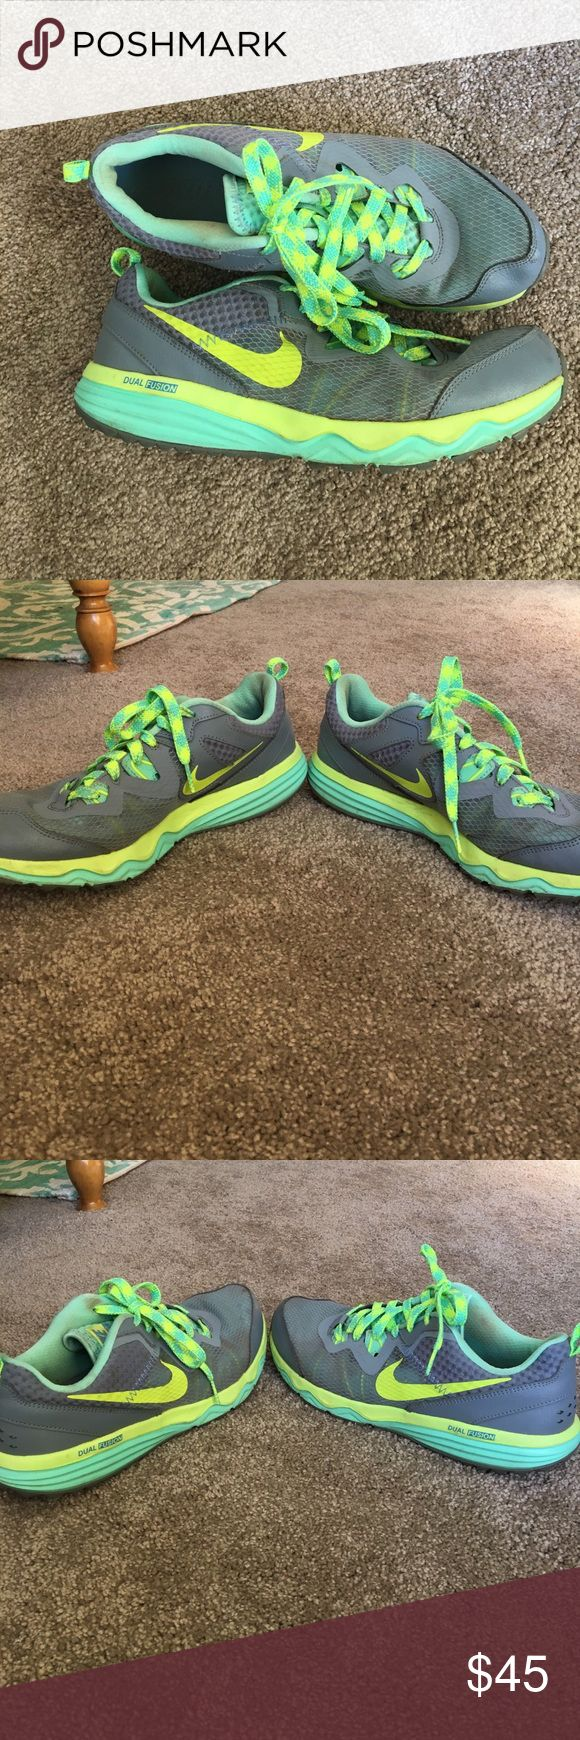 Nike Dual Fusion Trail Tennis Shoes Vibrantly colored tennis shoes. Great for outdoor running! Normal wear and tear and some staining. Nike Shoes Sneakers